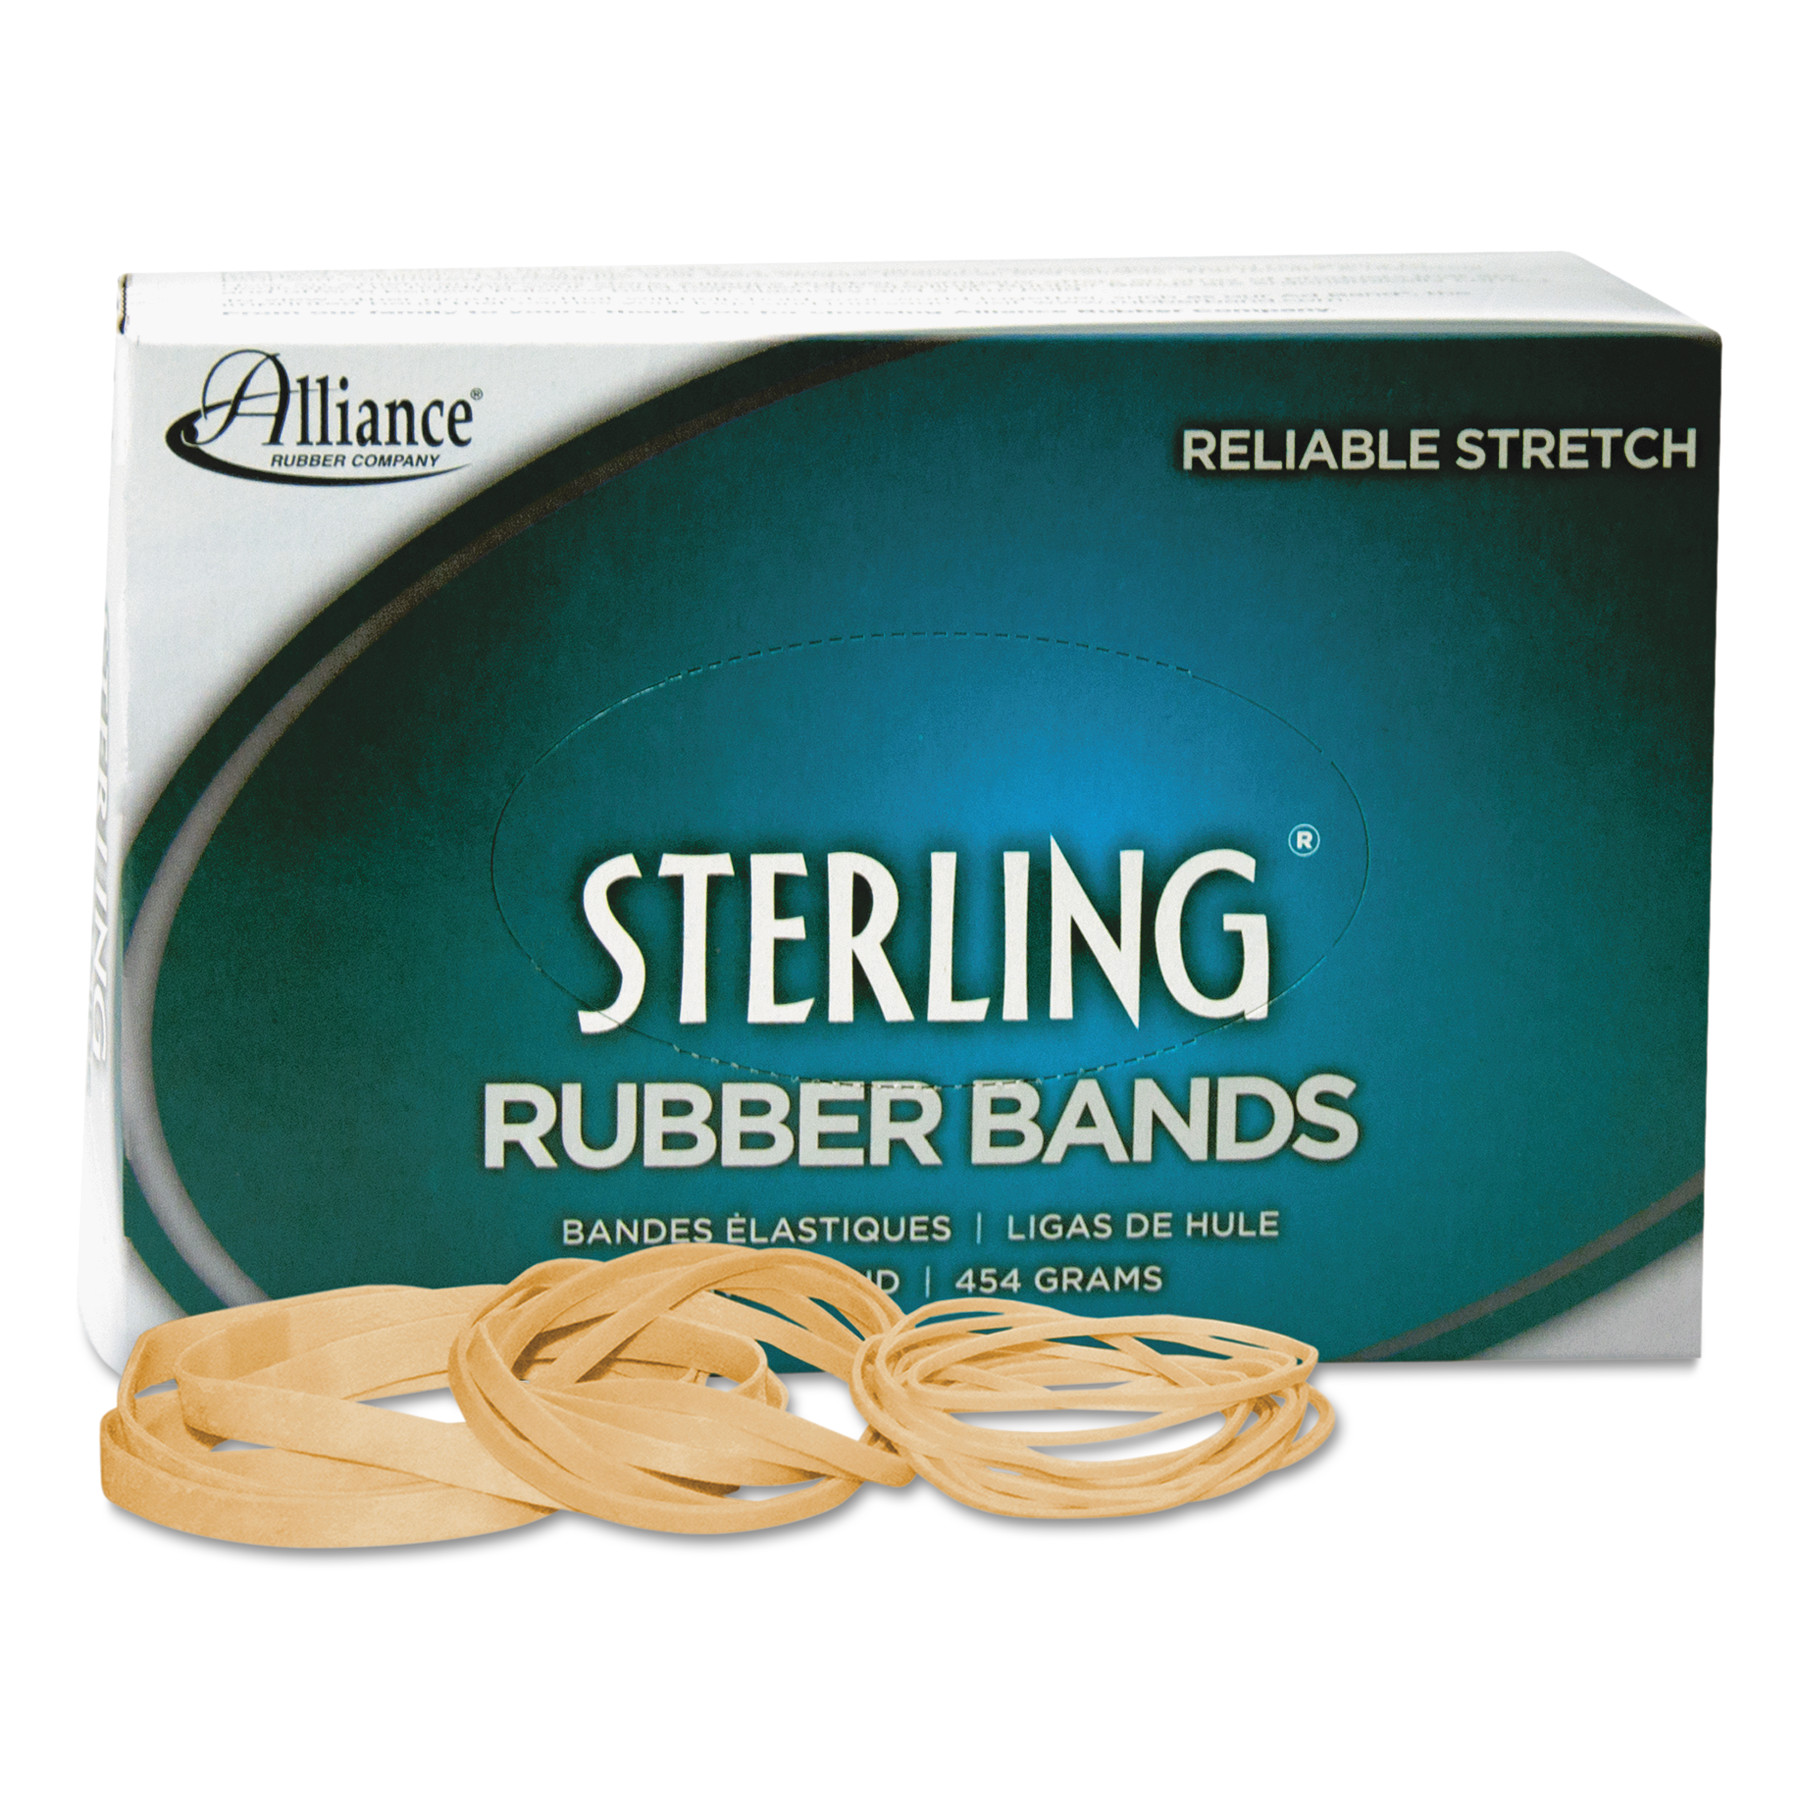 Alliance Sterling Rubber Bands Rubber Band, 31, 2 1/2 x 1/8, 1200 Bands/1lb Box -ALL24315